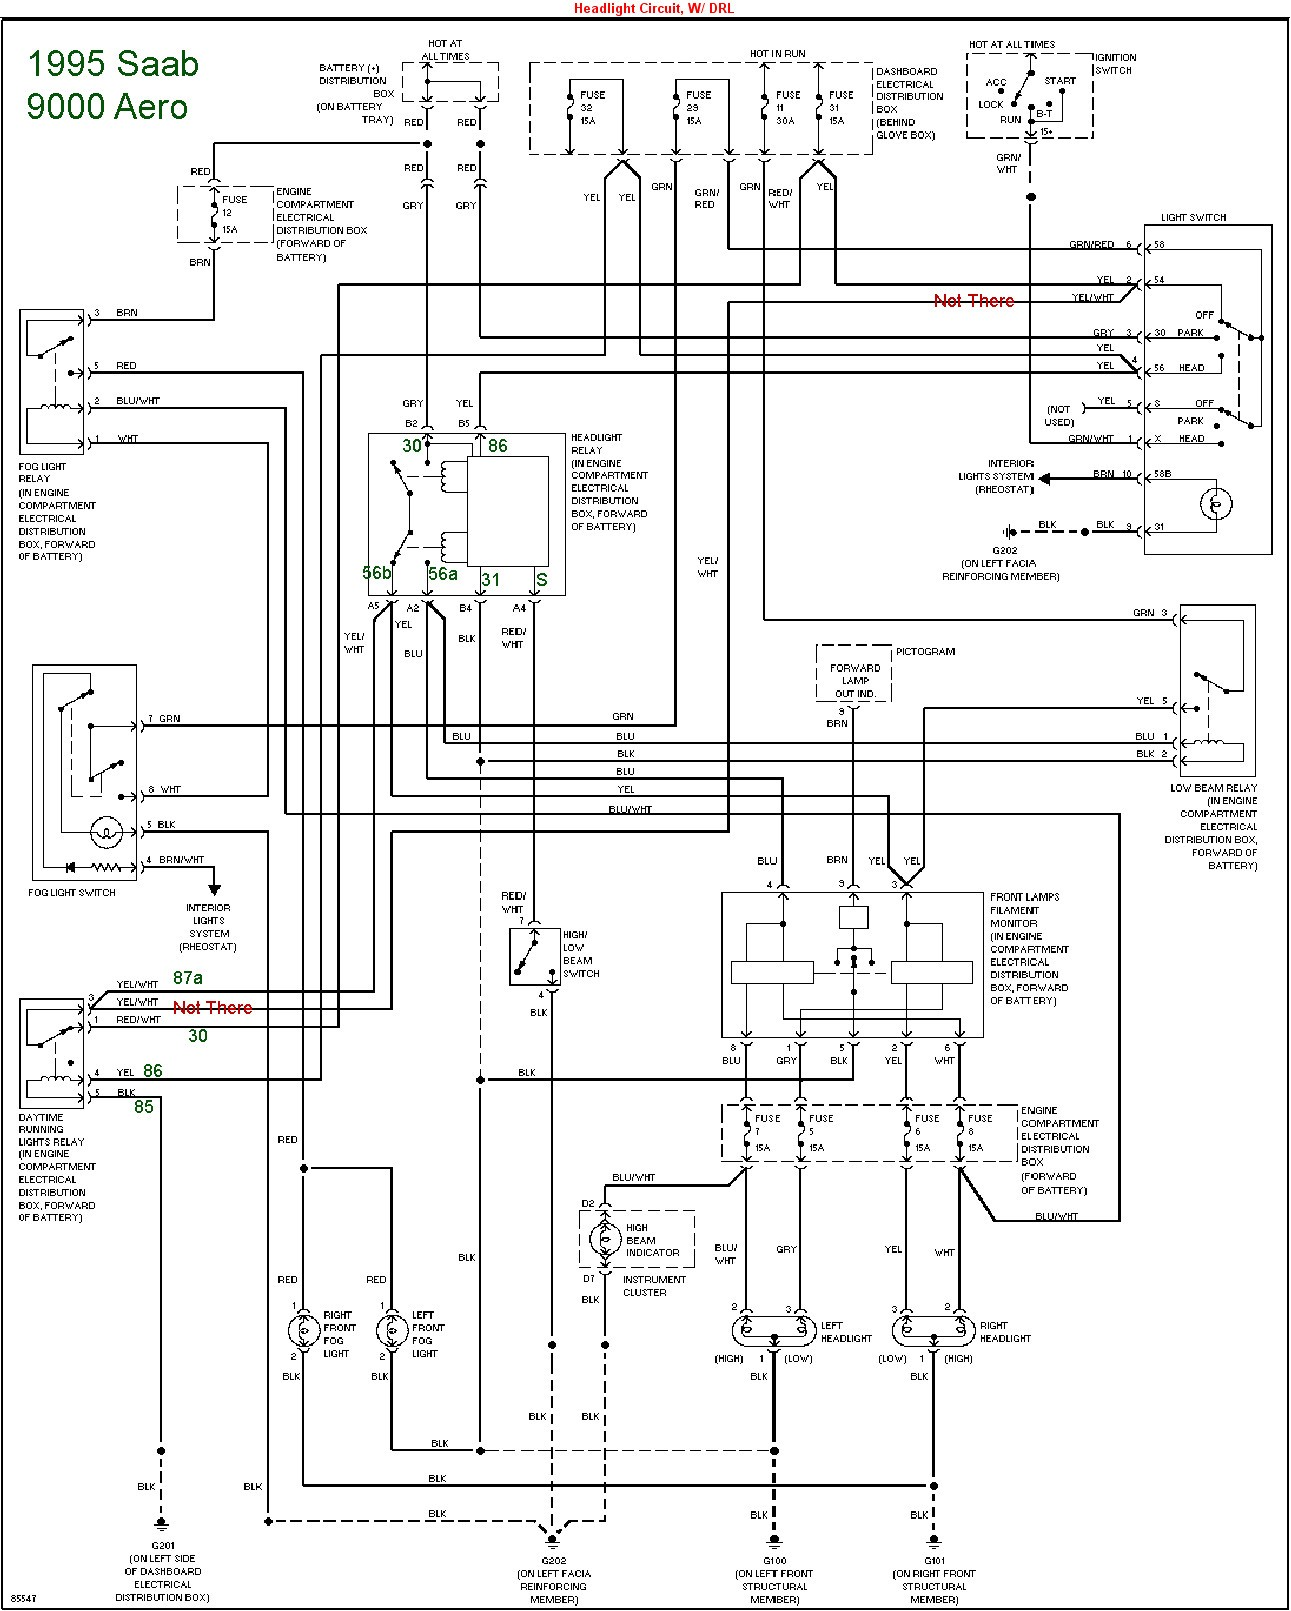 RADN_3639] 2005 Saab 9 3 Convertible Wiring Diagram Diagram Wiring Diagram  - TILDEN.COLEGIOENFERMERIACEUTA.ESCOLEGIOENFERMERIACEUTA.ES: Diagram Database Website Full Edition